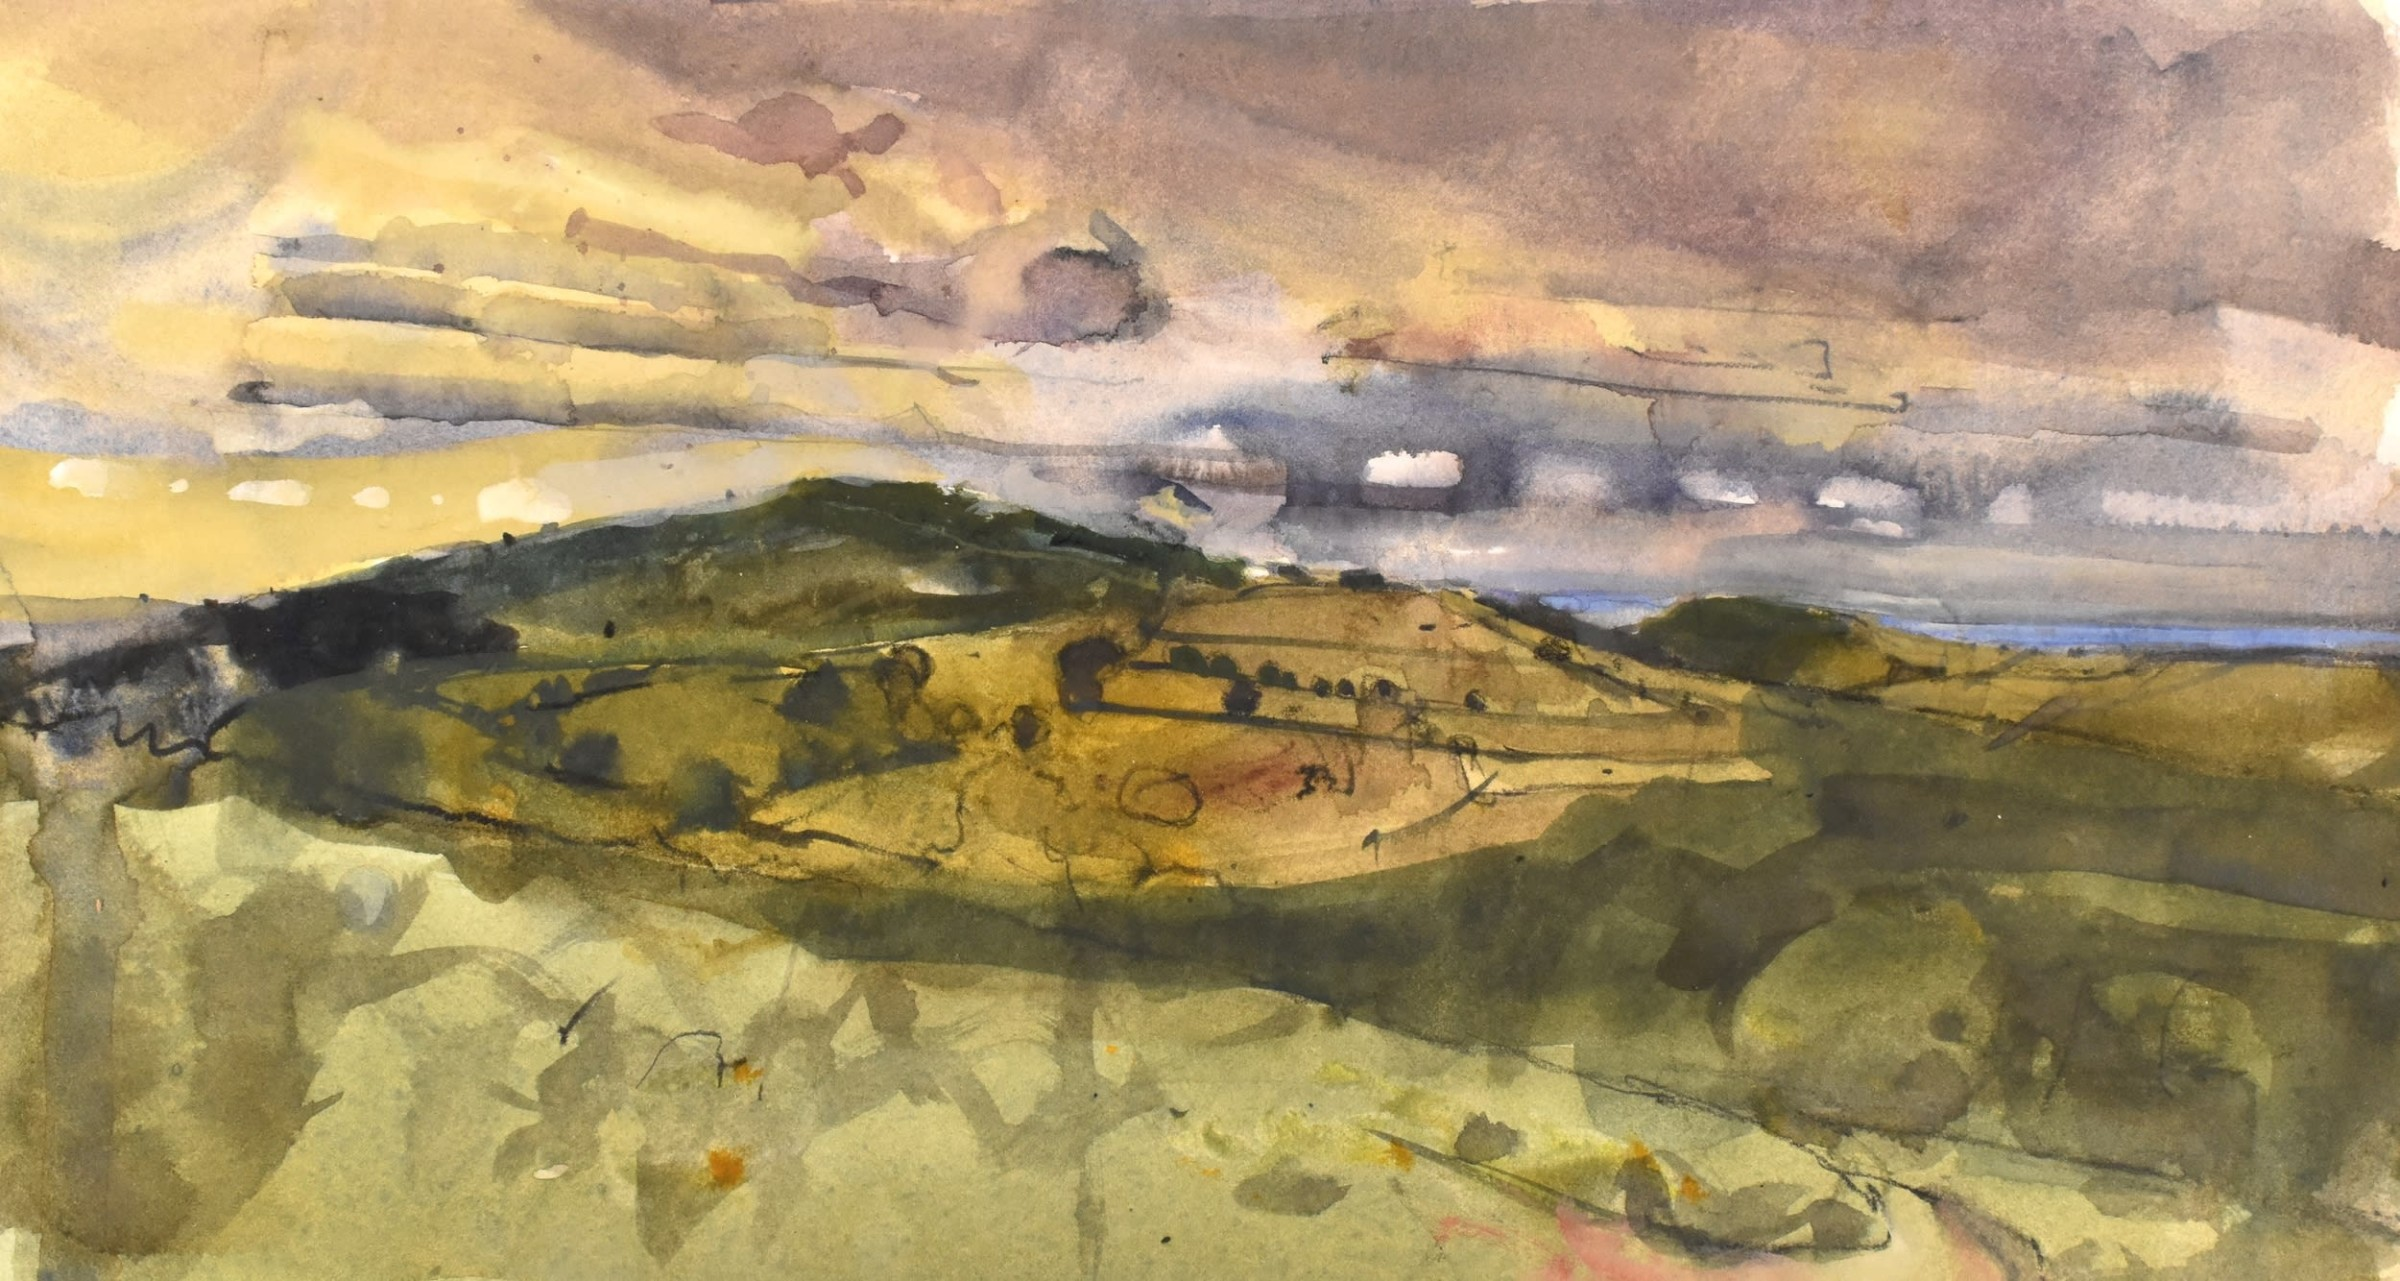 """<span class=""""link fancybox-details-link""""><a href=""""/artists/92-richard-pikesley/works/12132-richard-pikesley-edge-of-dartmoor-rain-coming/"""">View Detail Page</a></span><div class=""""artist""""><span class=""""artist""""><strong>Richard Pikesley</strong></span></div><div class=""""title""""><em>Edge of Dartmoor, Rain Coming</em></div><div class=""""medium"""">watercolour</div><div class=""""dimensions"""">Frame: 40 x 54 cm<br /> Artwork: 20 x 36 cm</div><div class=""""price"""">£750.00</div>"""